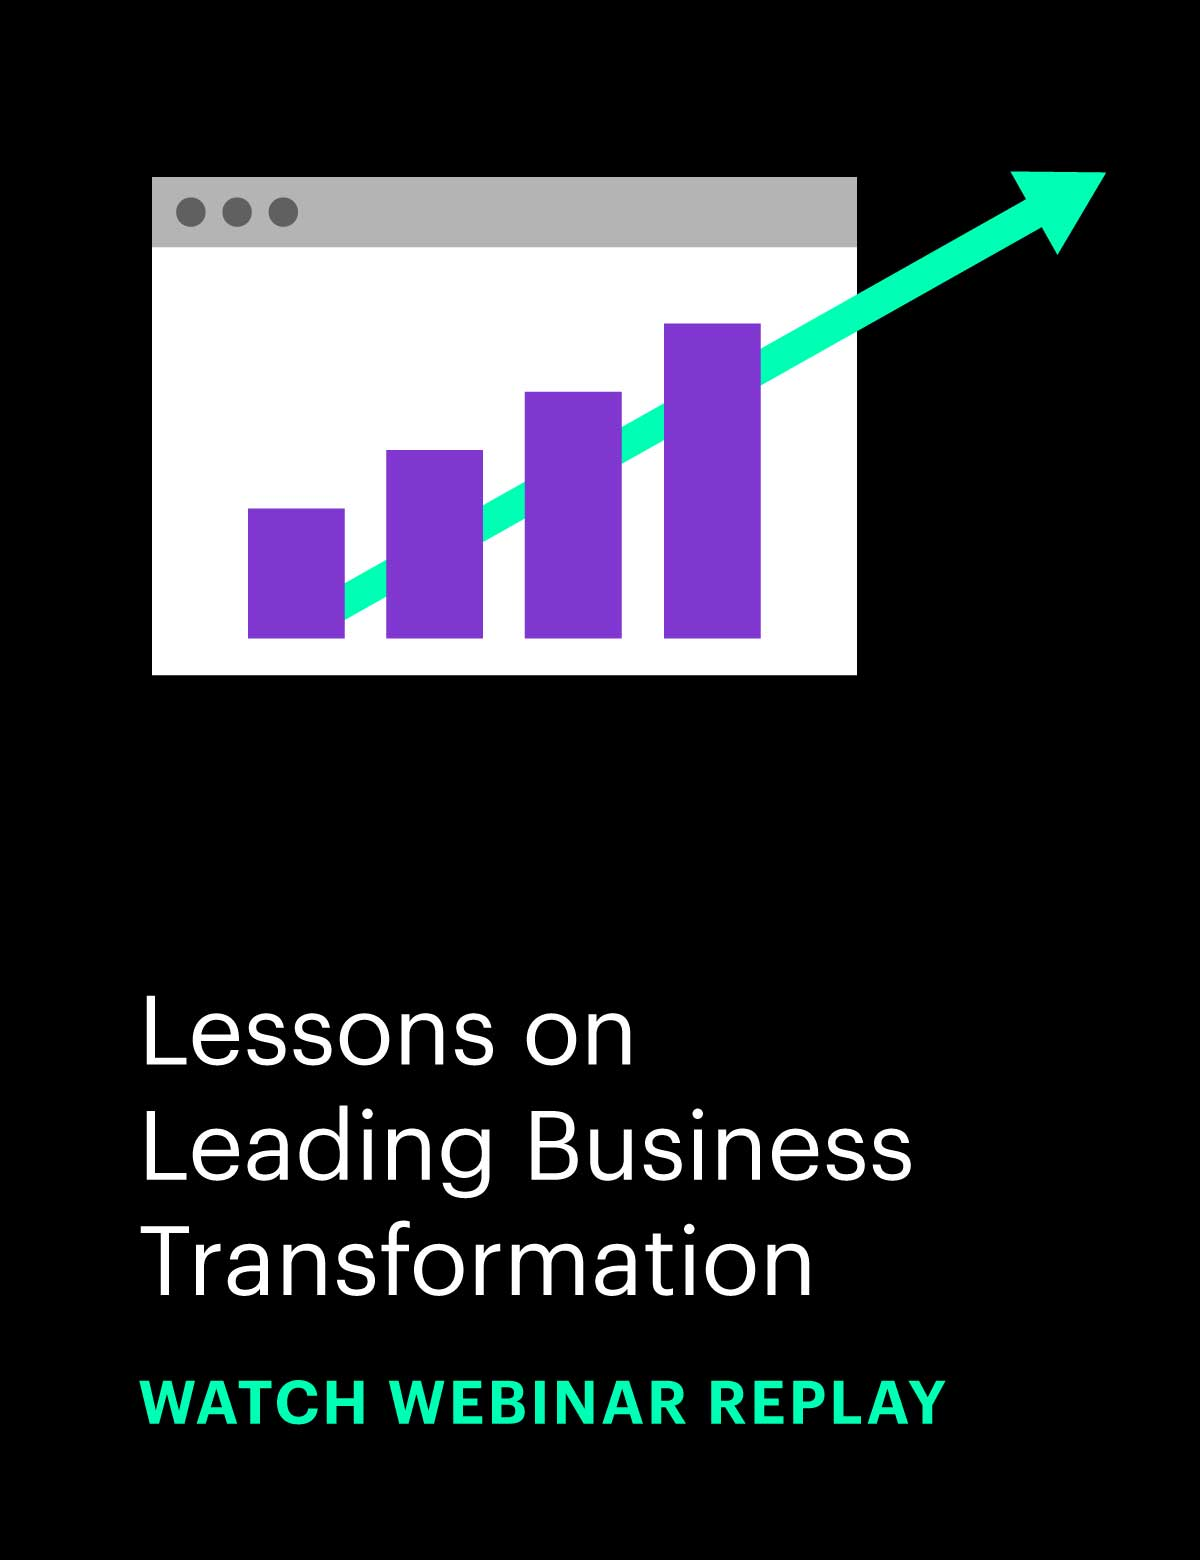 Webinar Replay: Lessons on Leading Business Transformation